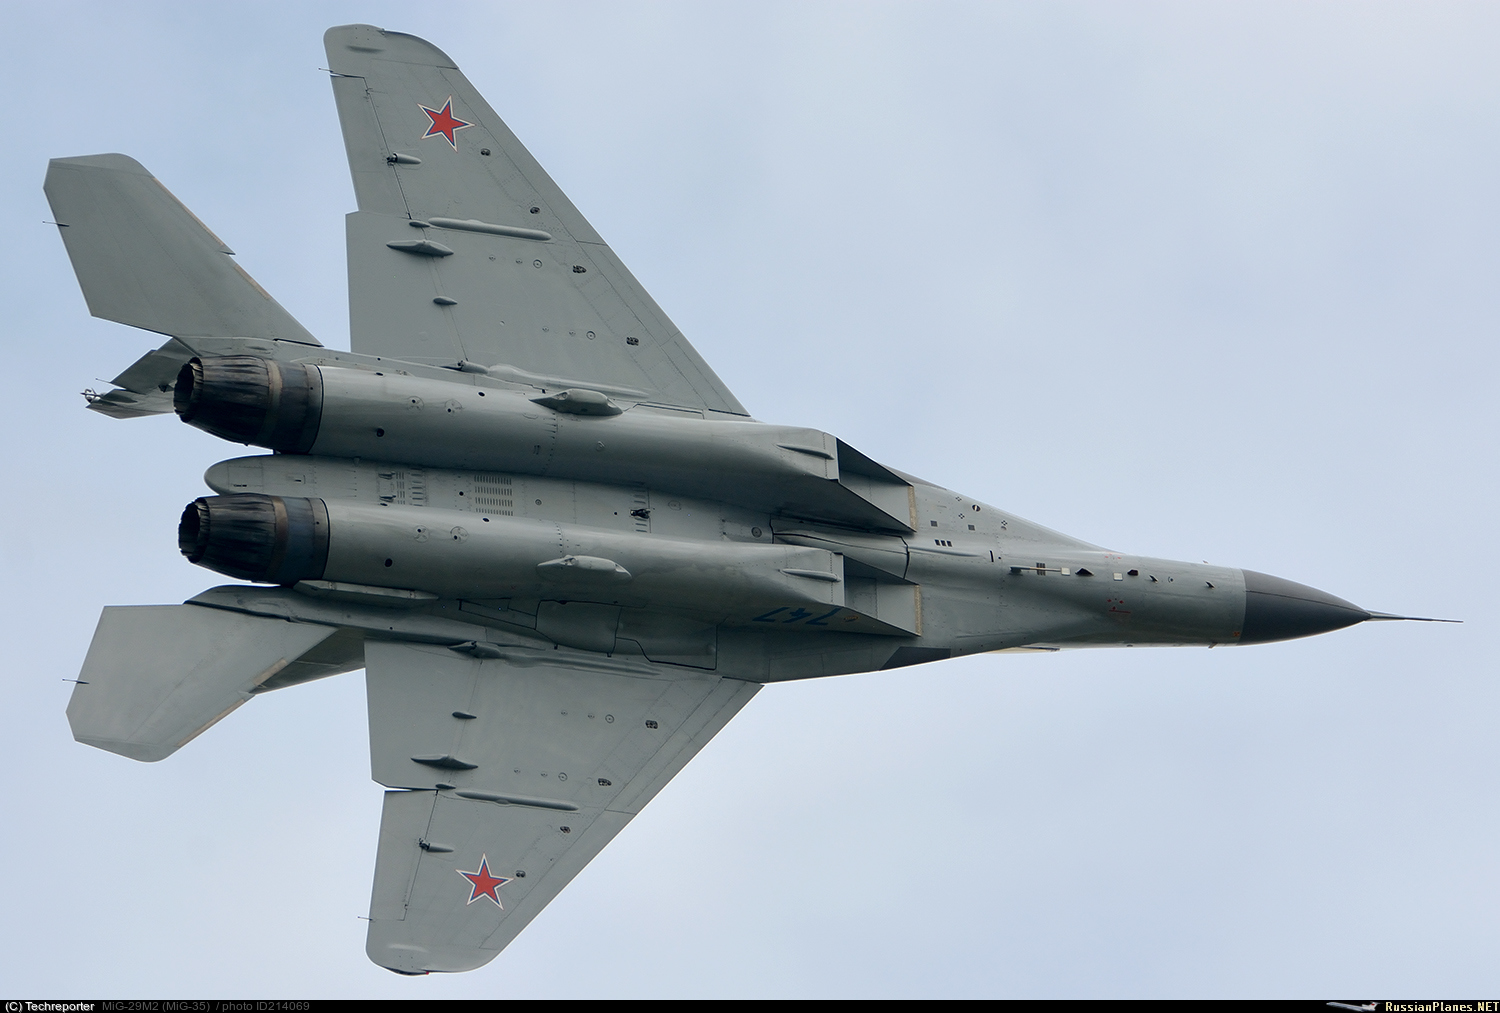 Prototype Mig 29 Images - Reverse Search